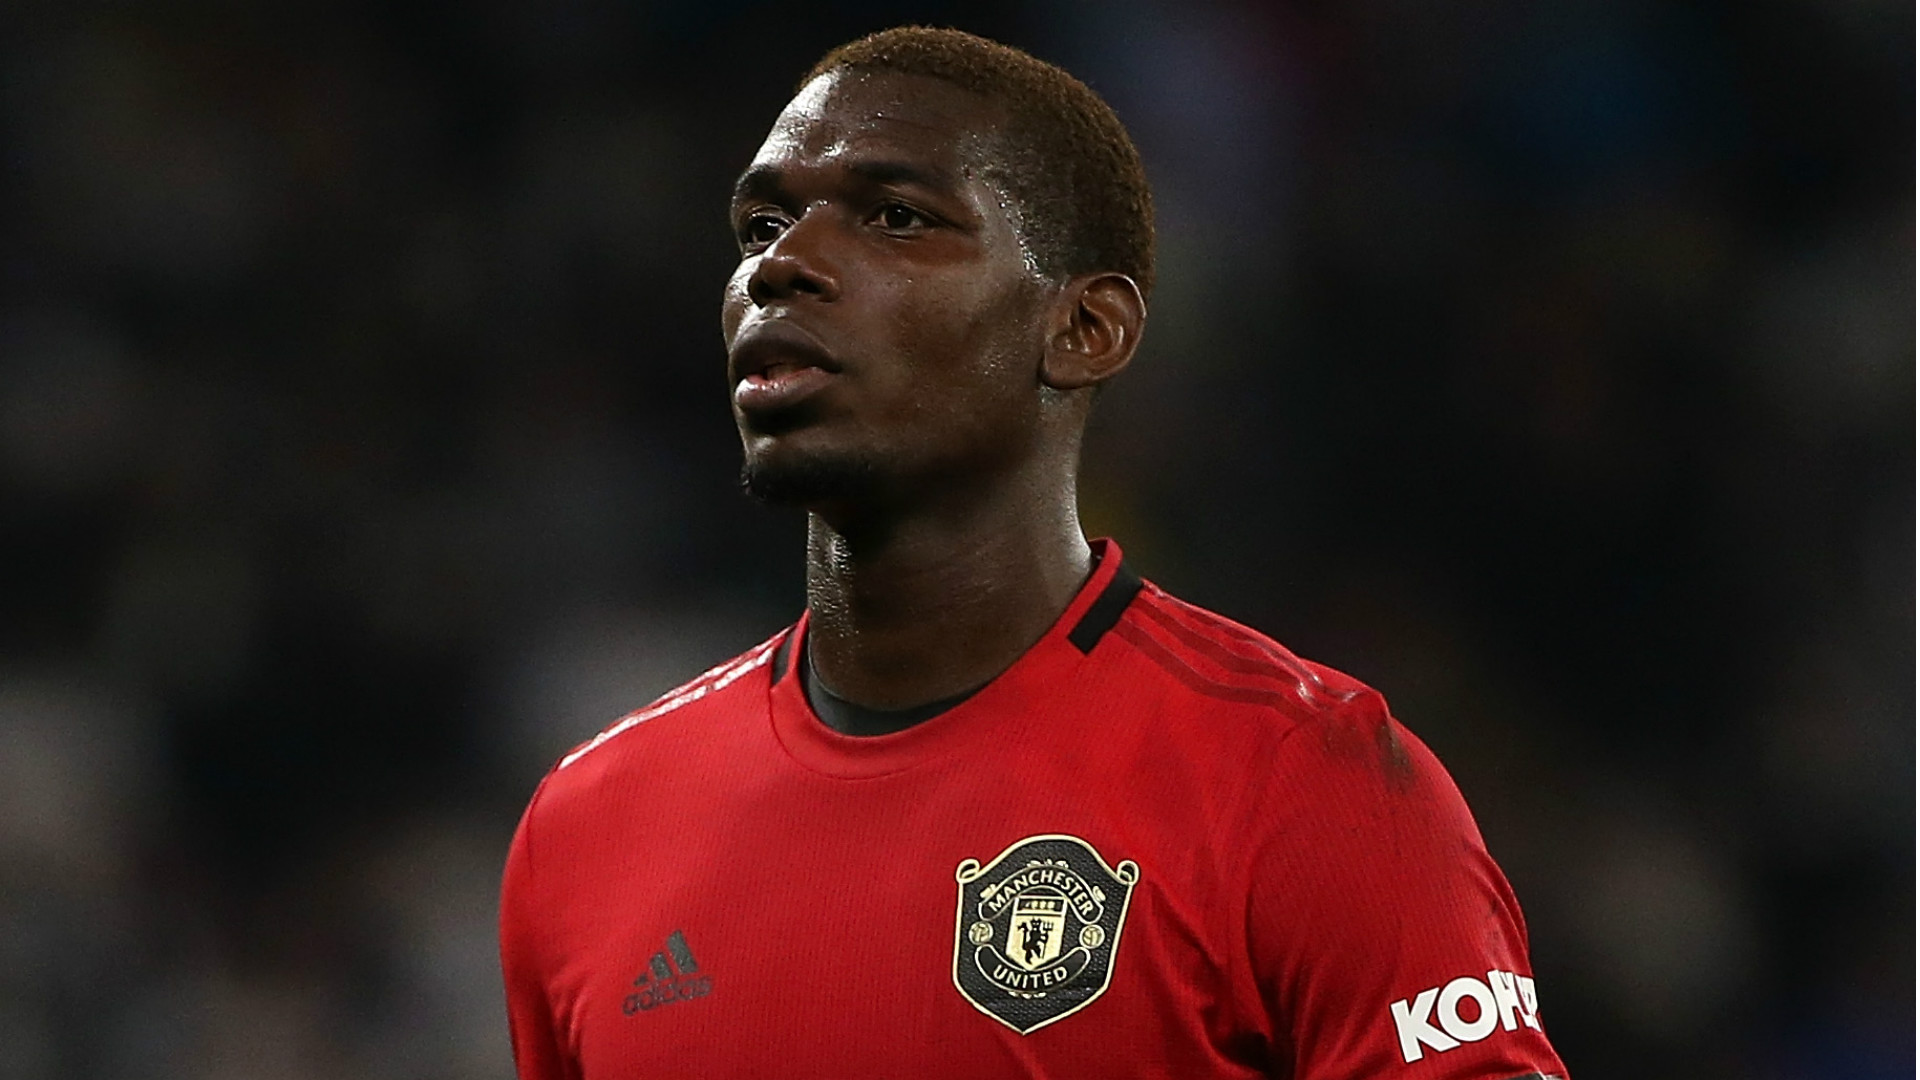 Latest Transfer Odds: Betting suggests Pogba will remain at Manchester United but Lukaku looks likely to leave